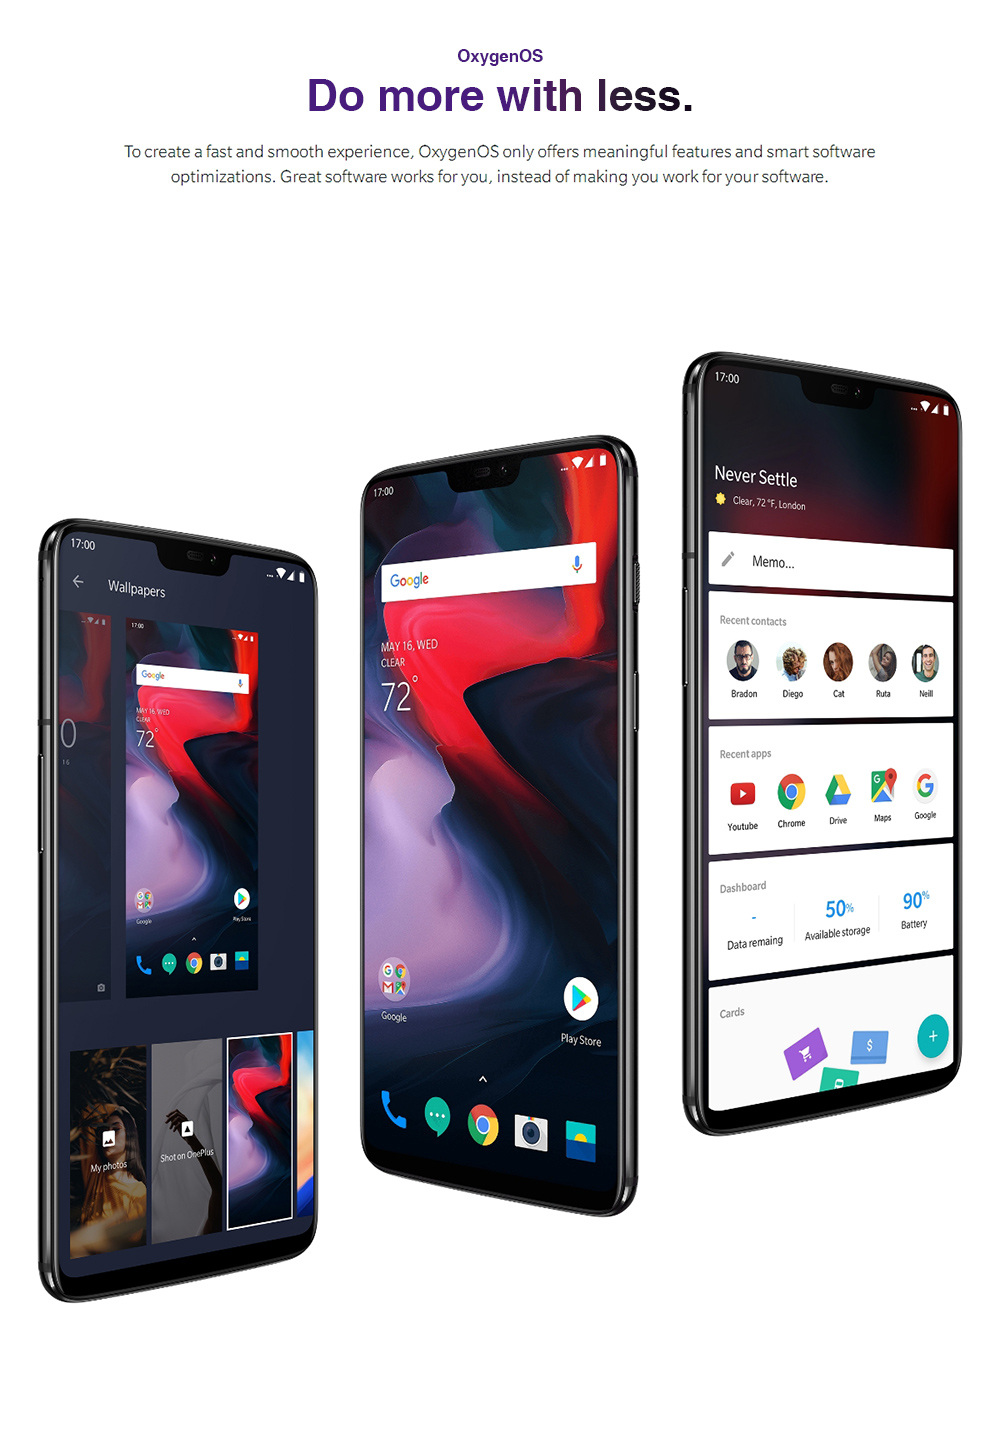 Oneplus 6 6.28 Inch Full Screen 4G Smartphone Snapdragon 845 Soc 8GB 256GB 20.0MP+16.0MP Dual Rear Cameras Android 8.1 NFC Dash Charge Type-C - Midnight Black